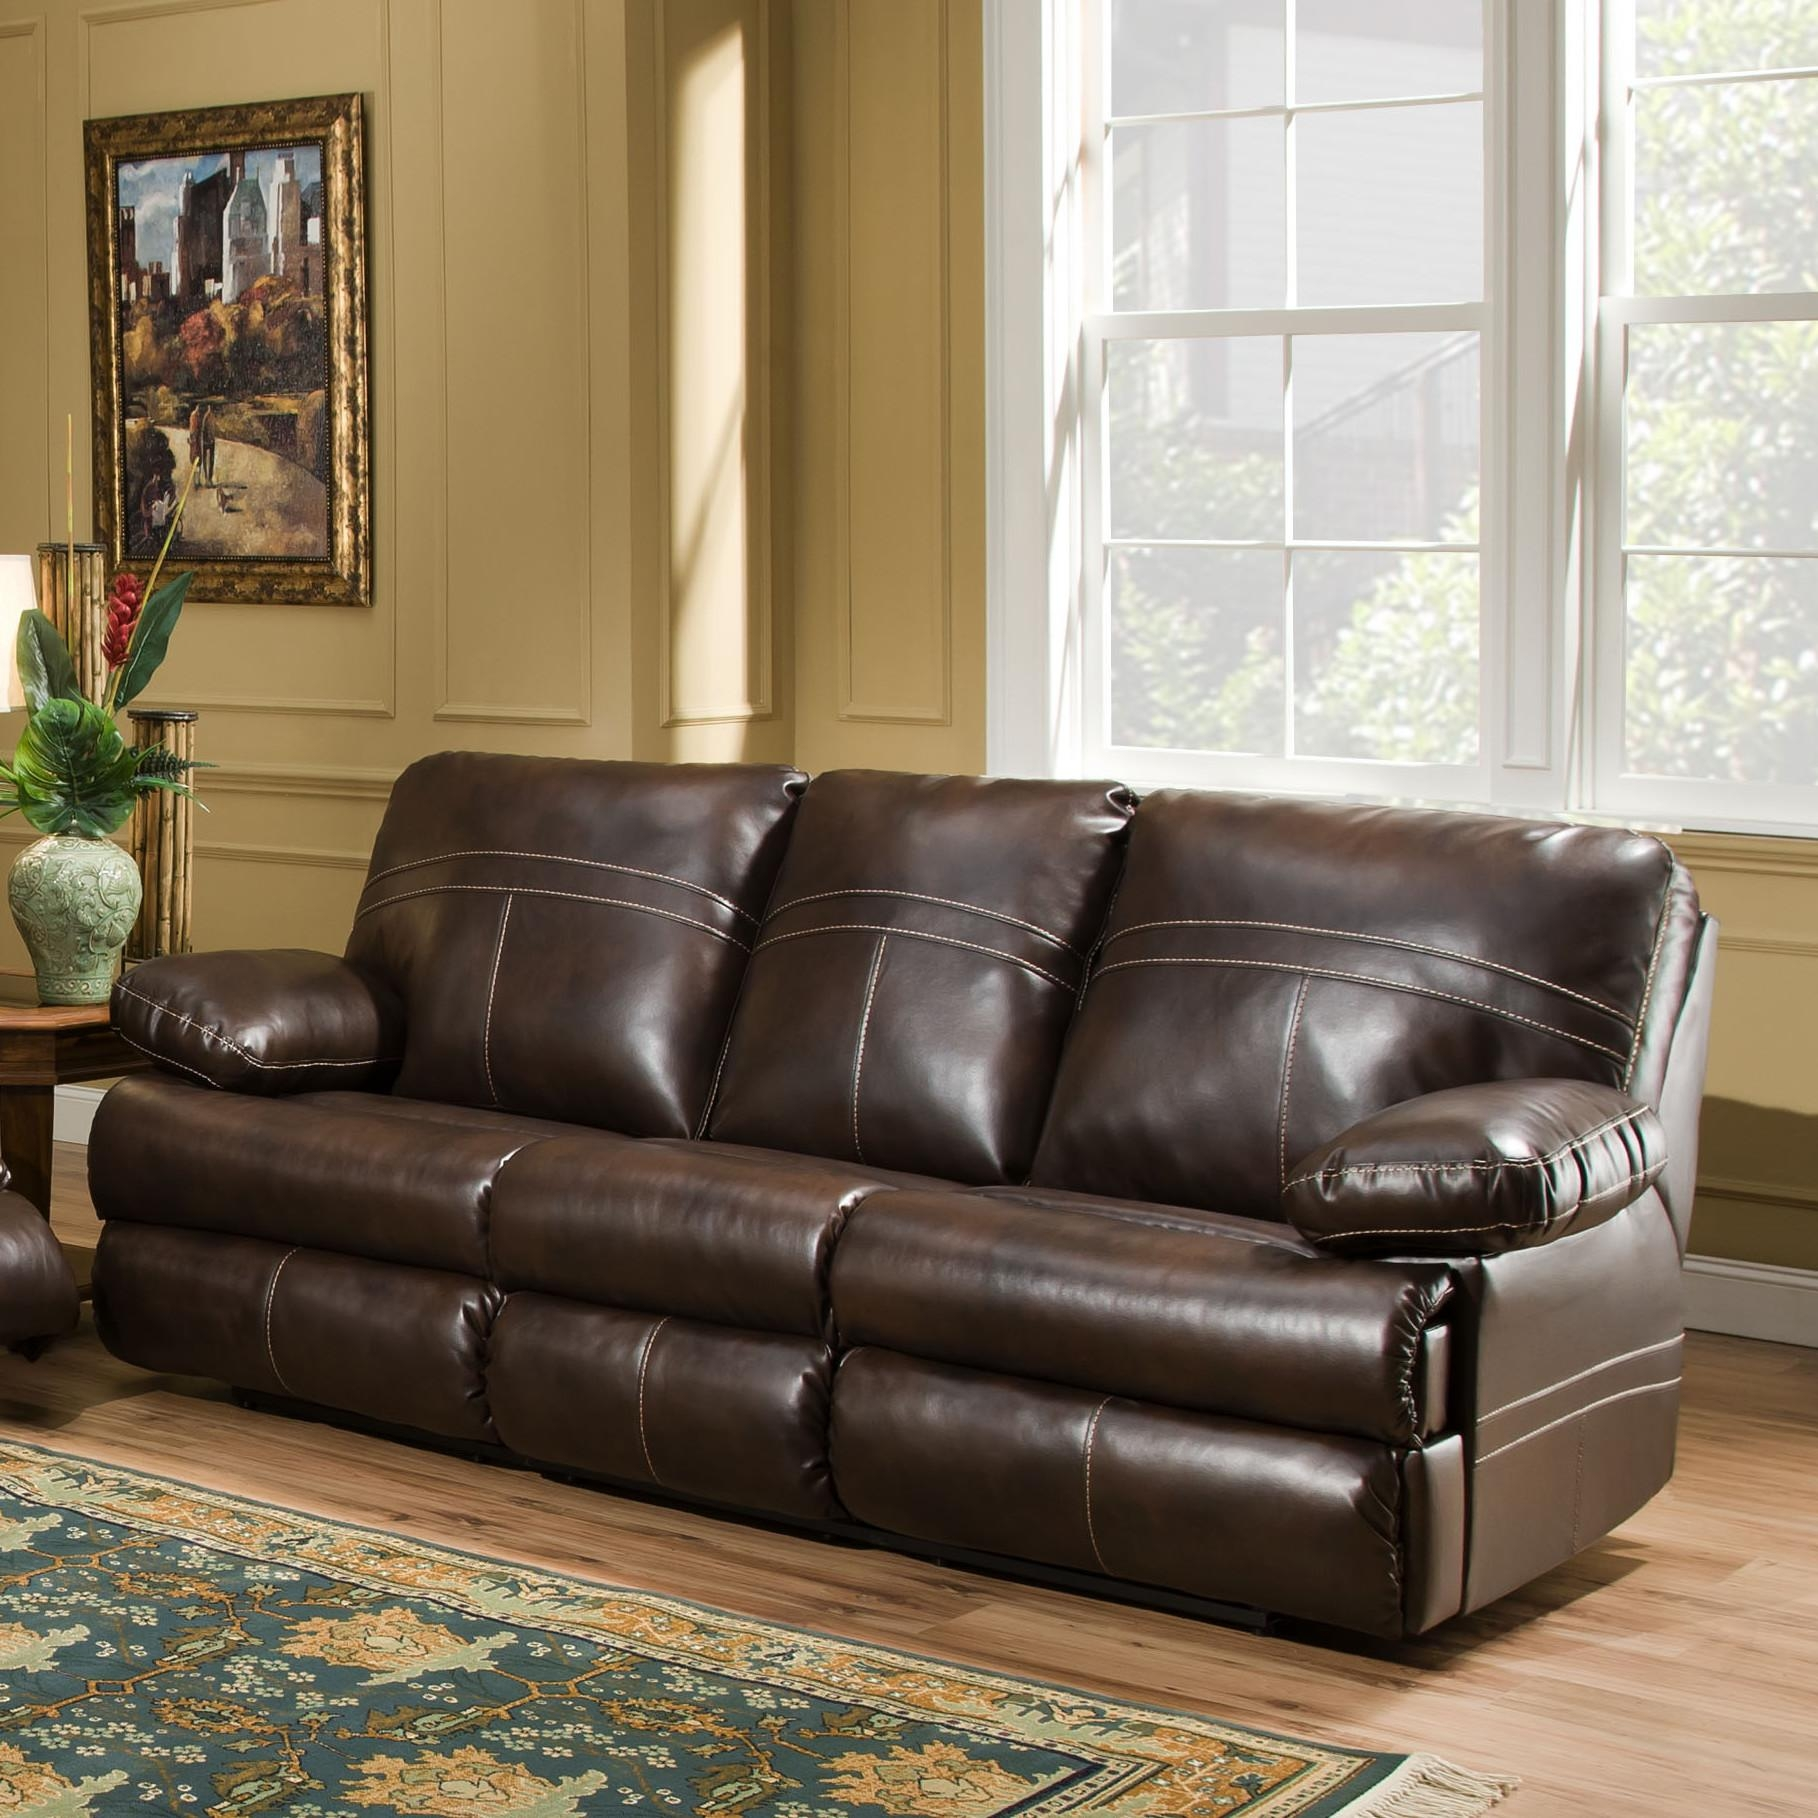 Furniture: Simmons Sectional For Comfortable Seating — Threestems pertaining to Simmons Leather Sofas and Loveseats